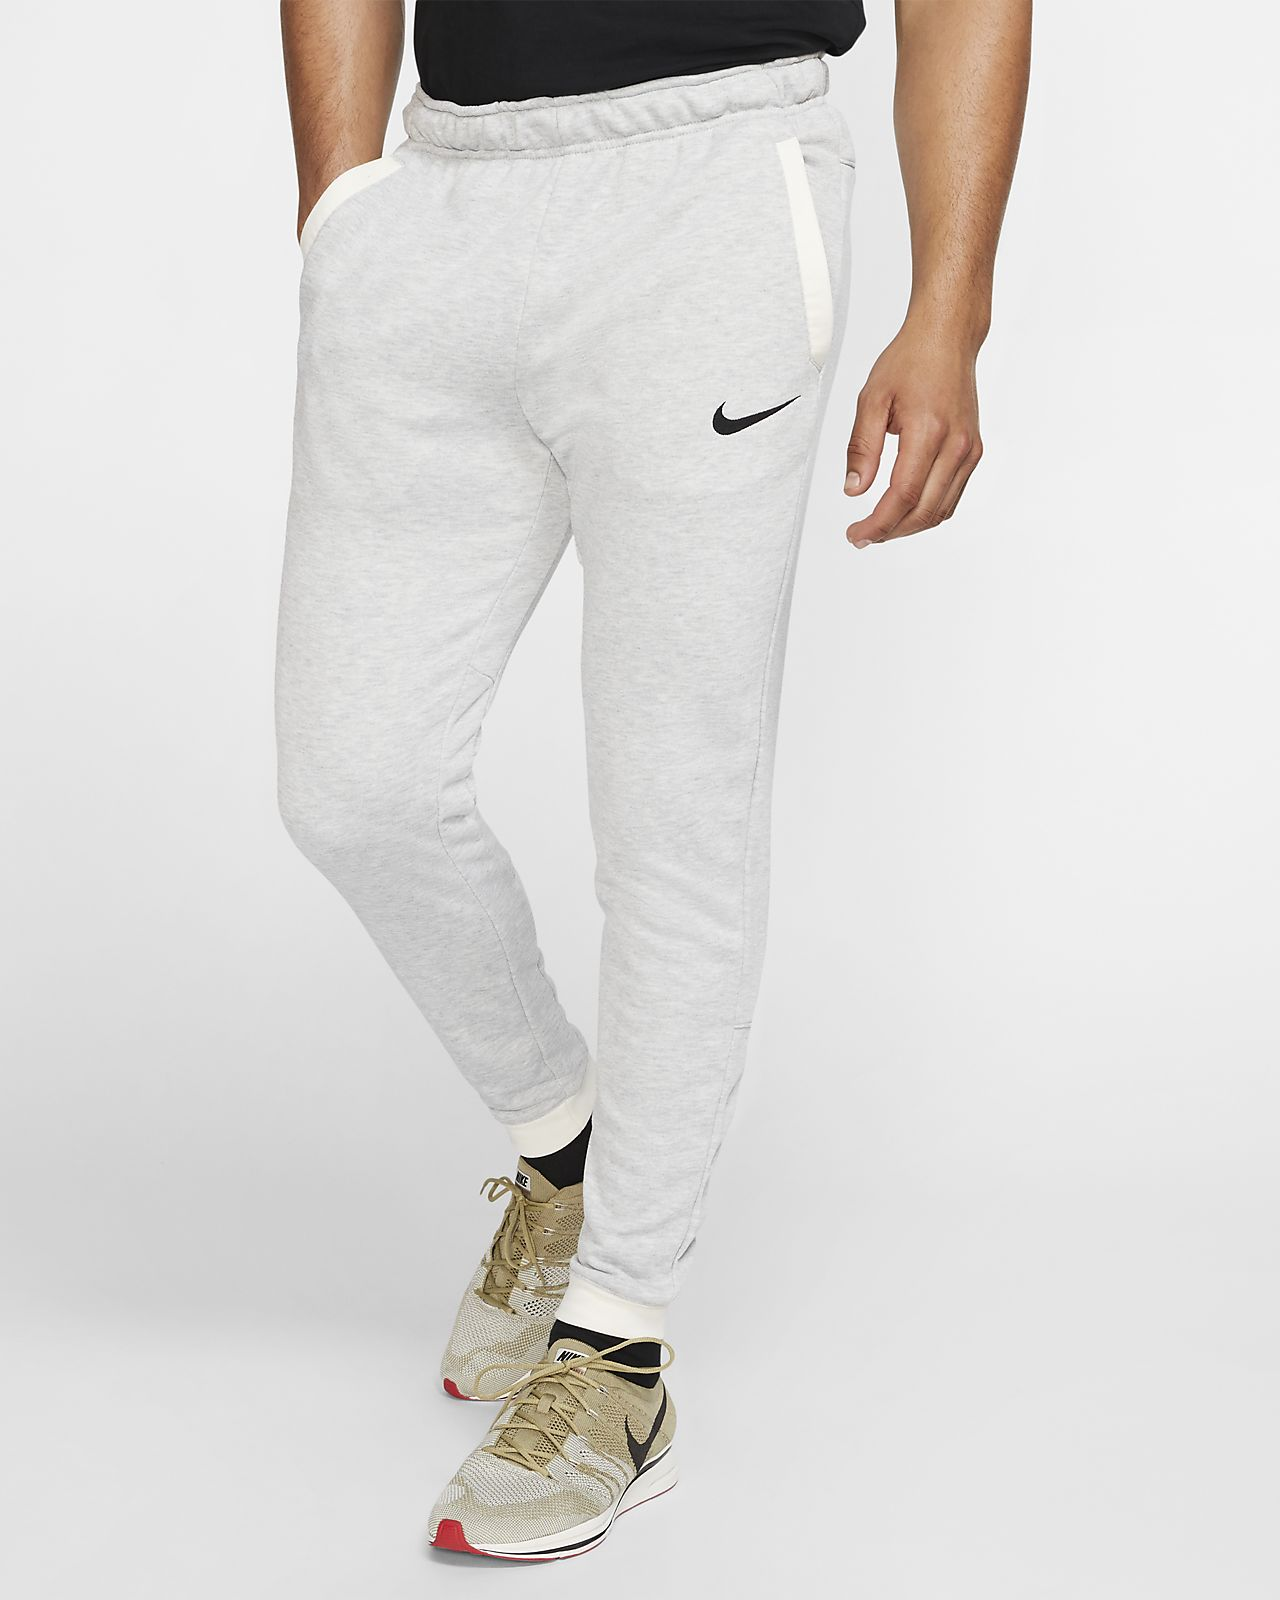 Nike Dri-FIT Men's Tapered Fleece Training Pants